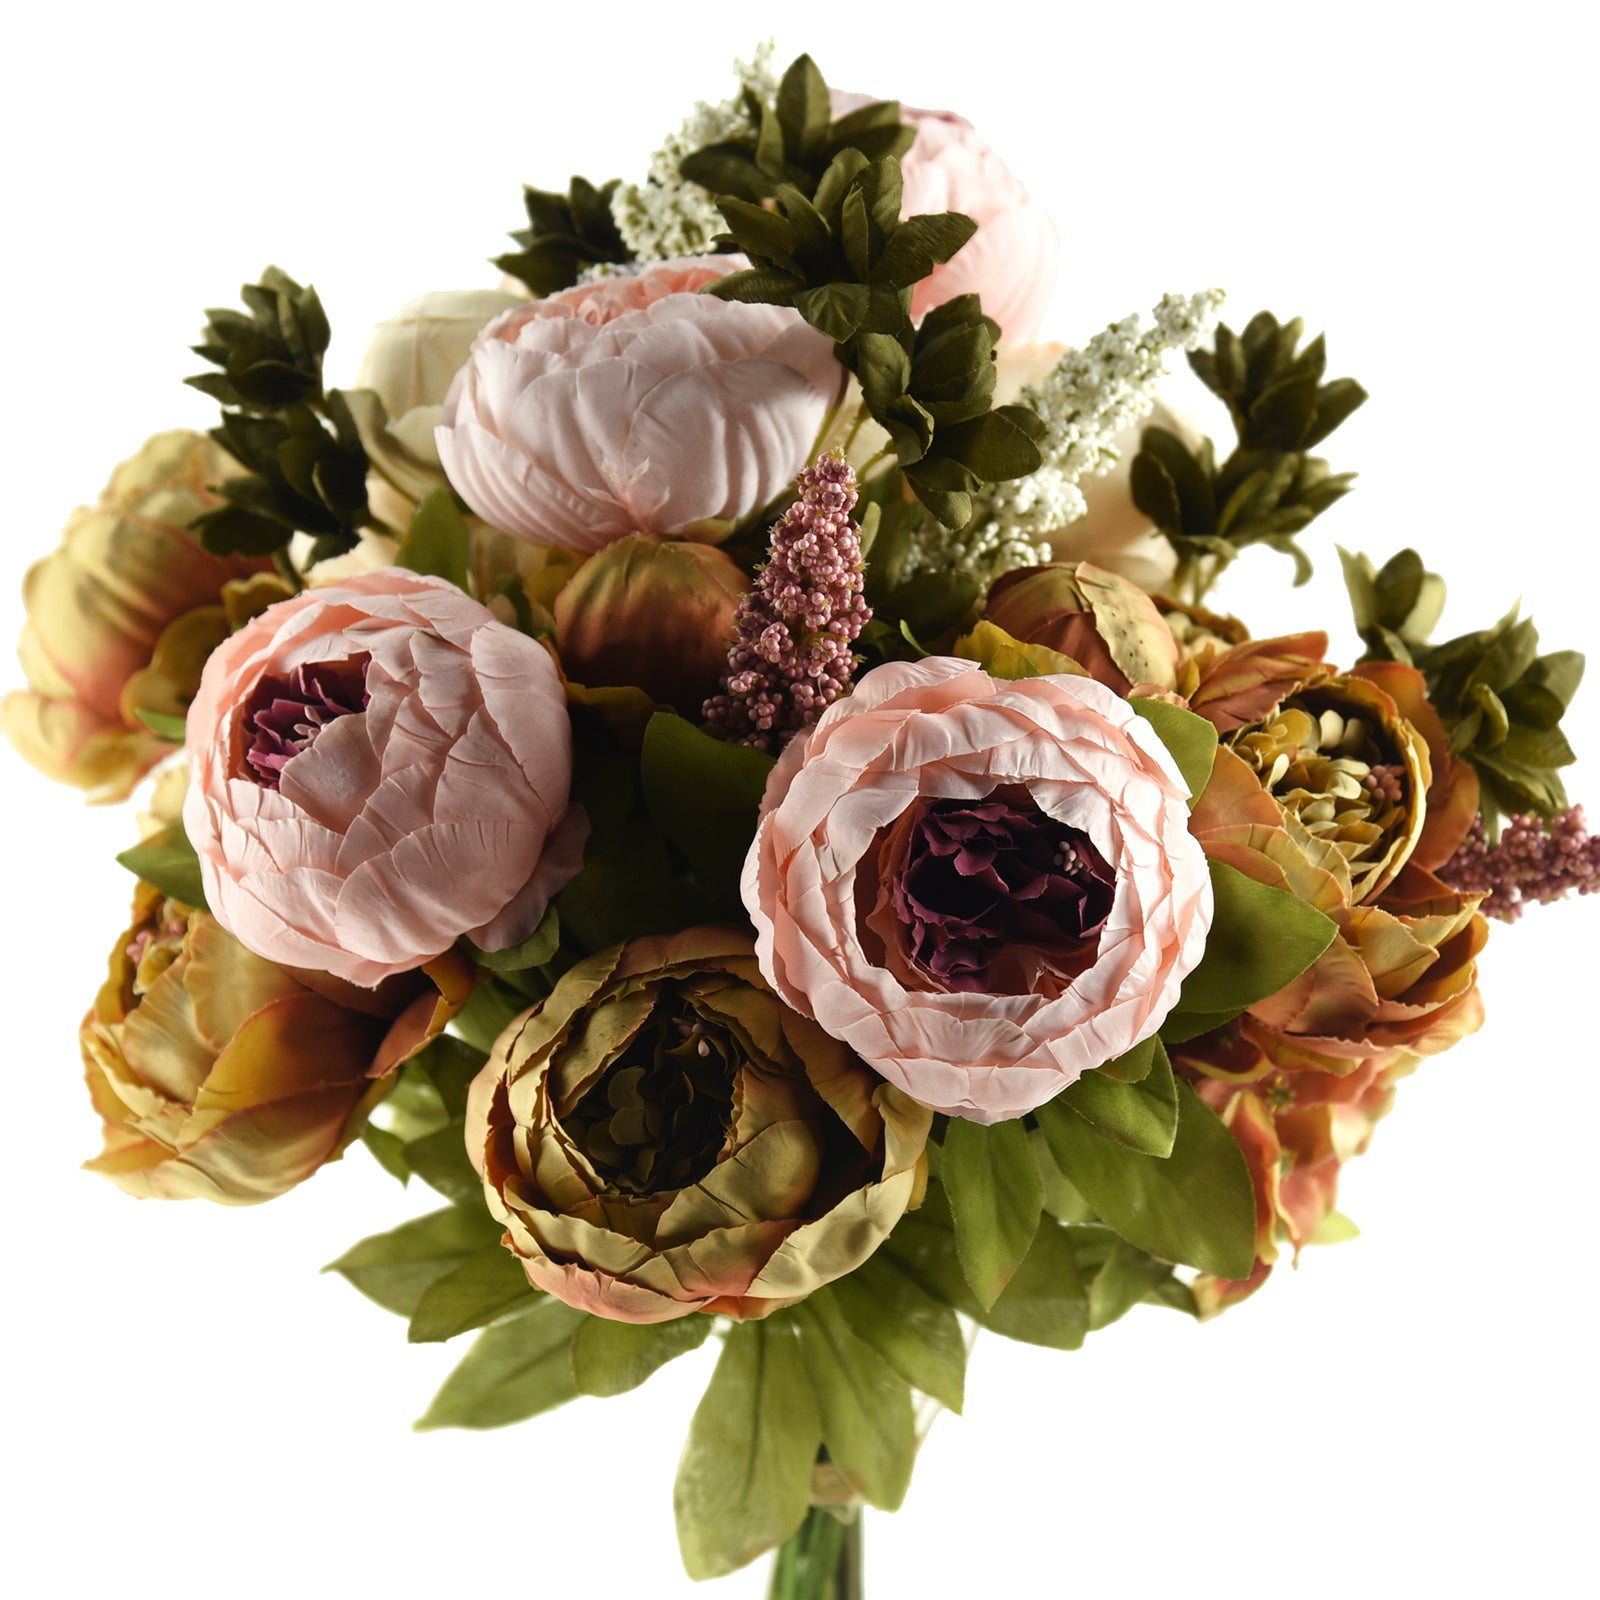 FiveSeasonStuff 2 Bundles Brown|Pink Peonies Artificial Flower Bouquet